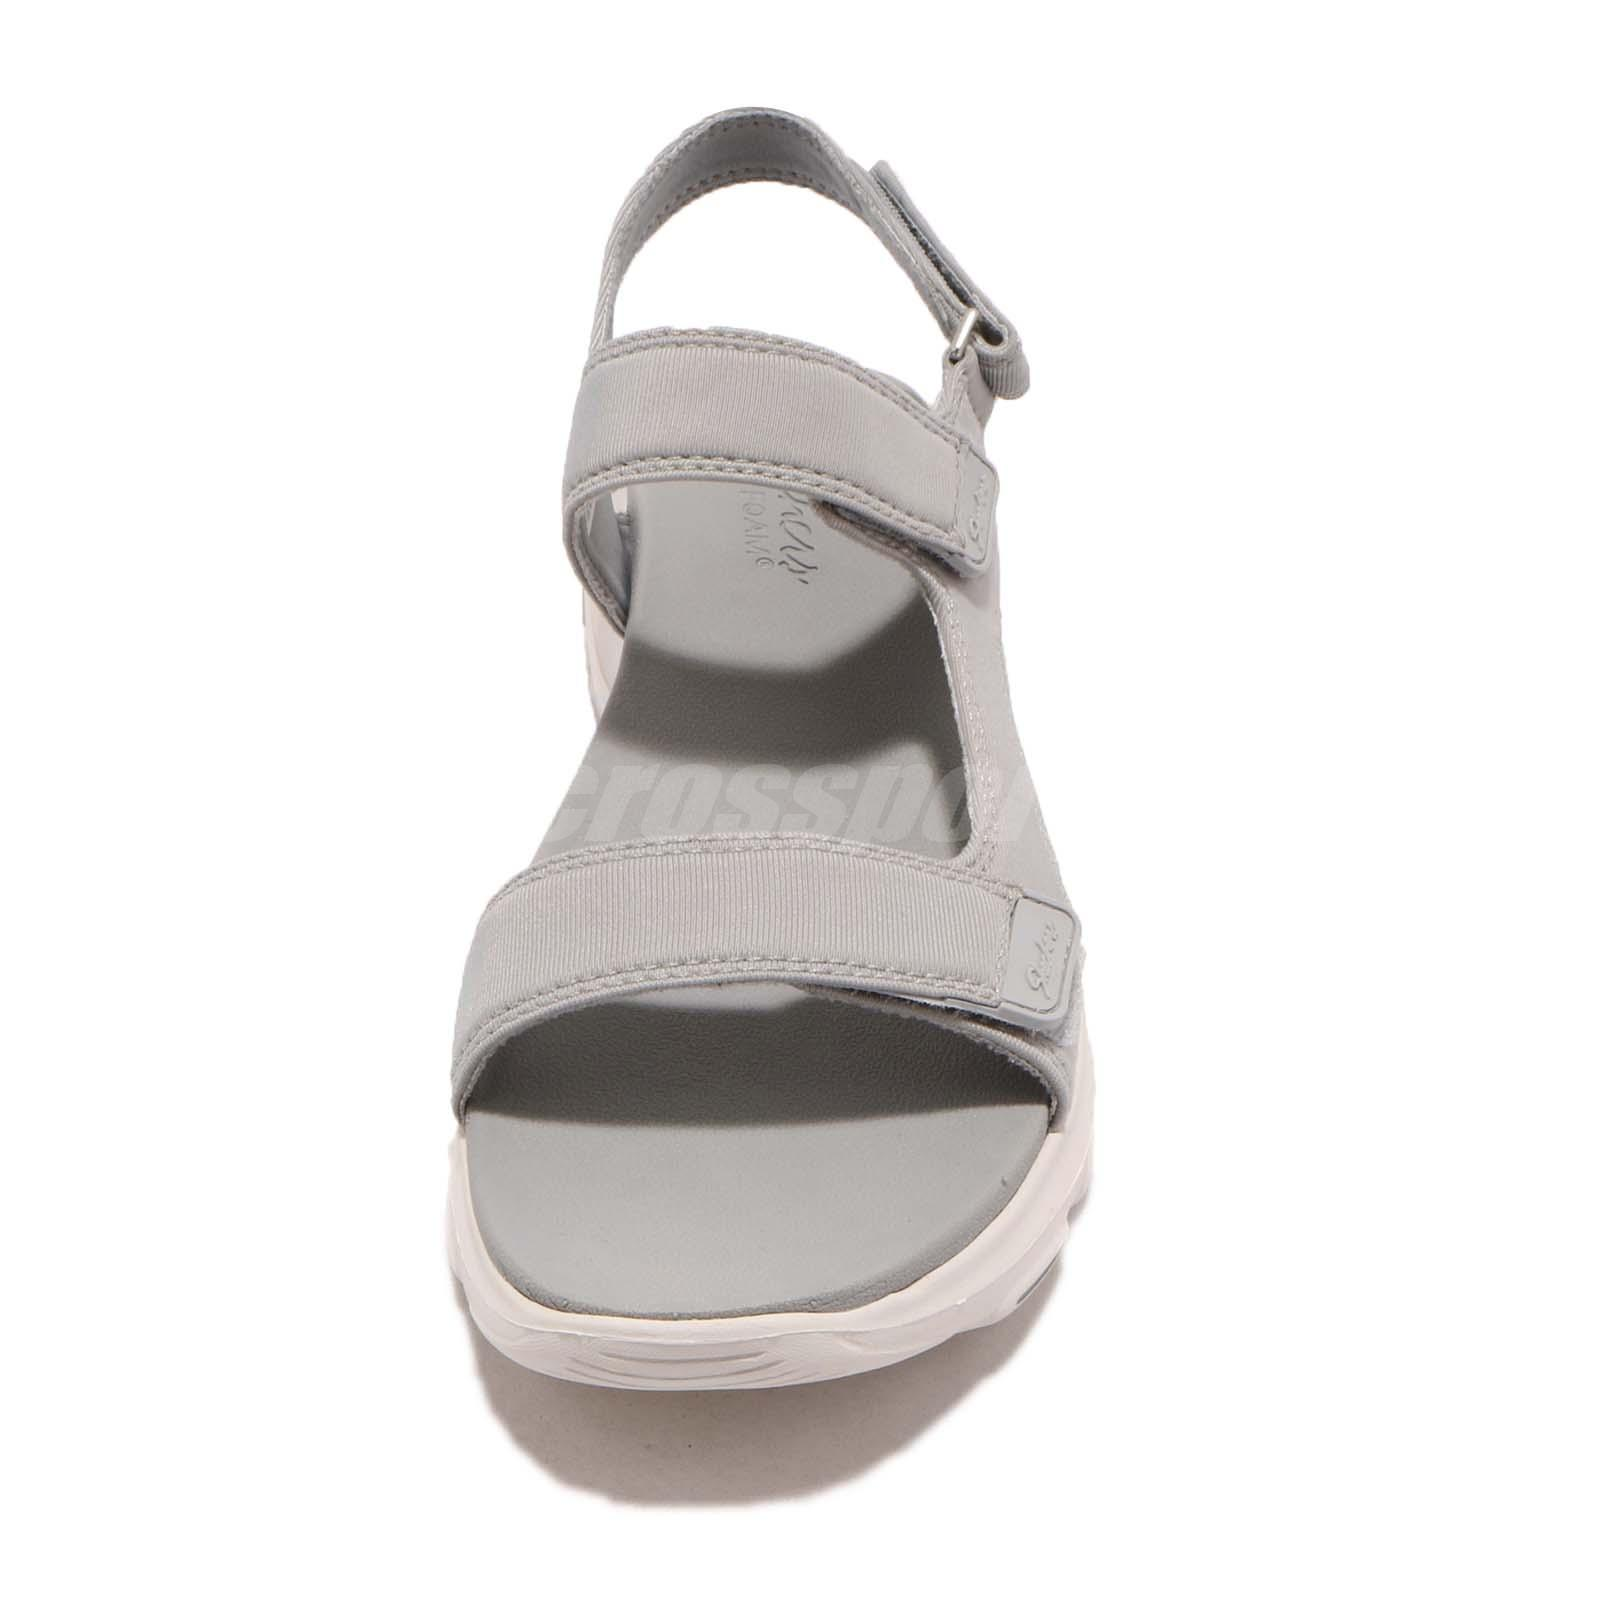 Details about Skechers DLites Ultra Camp Cool Grey White Women Sports Sandals Shoes 32383 GRY